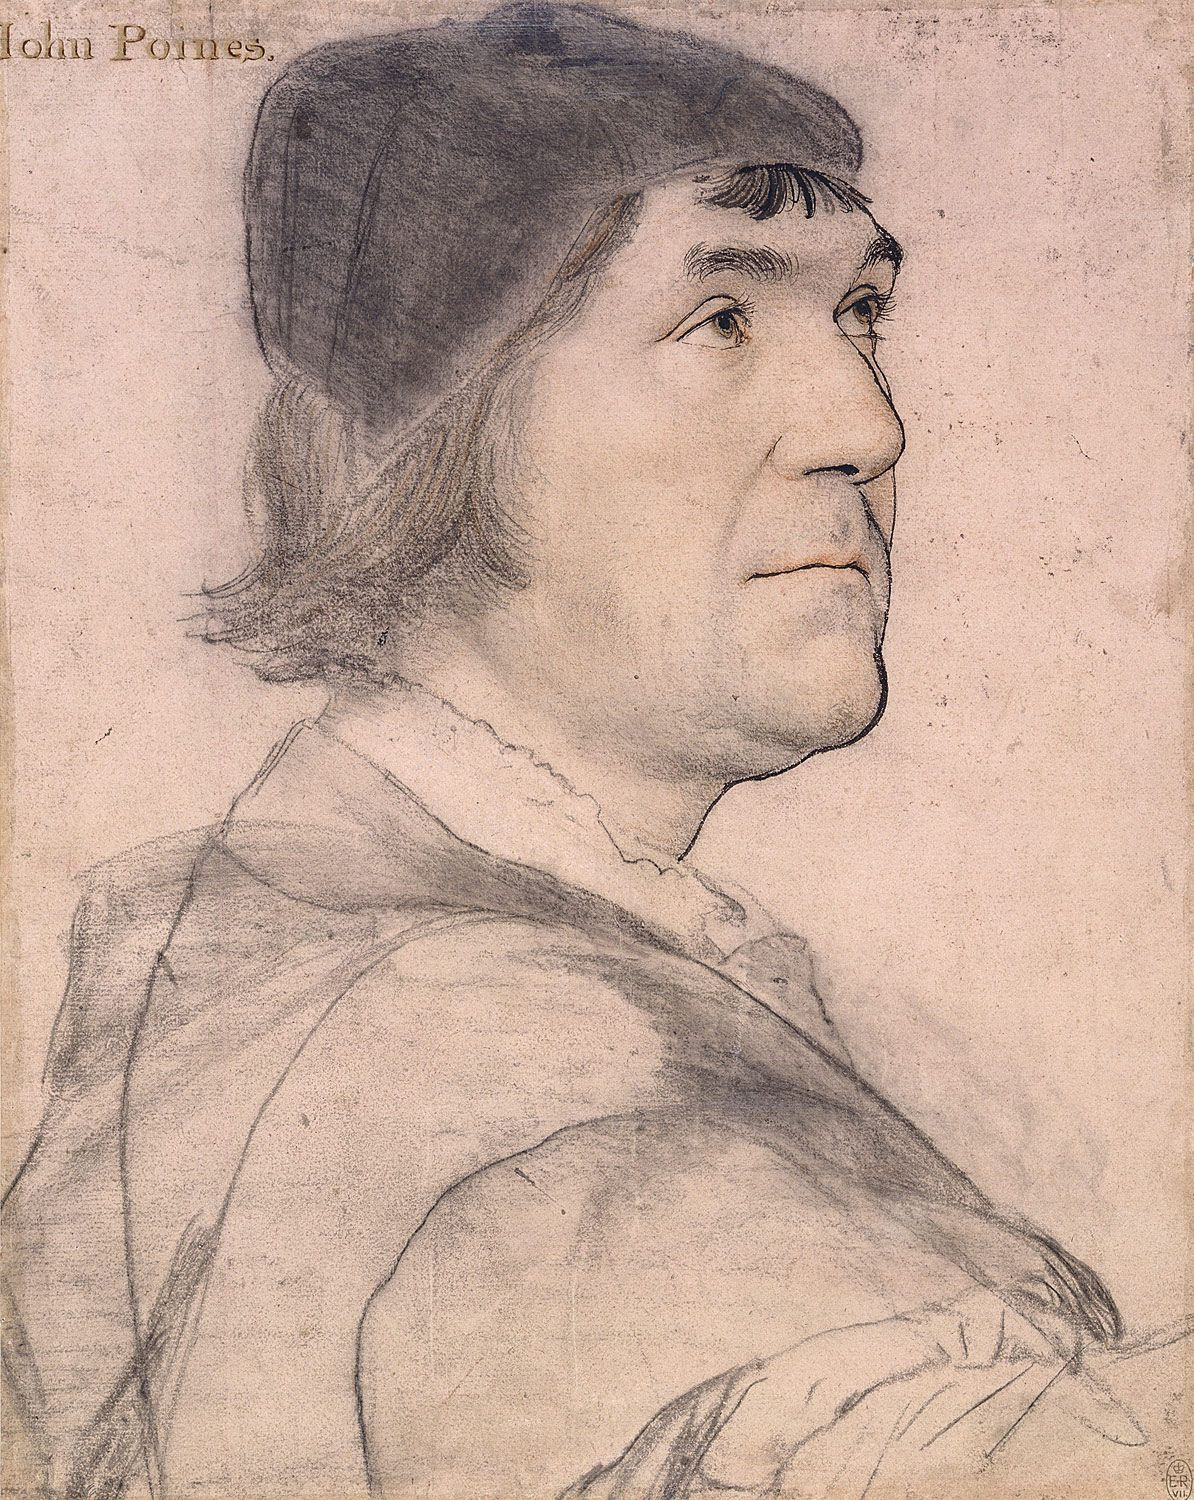 Portrait of John Poyntz. c.1535